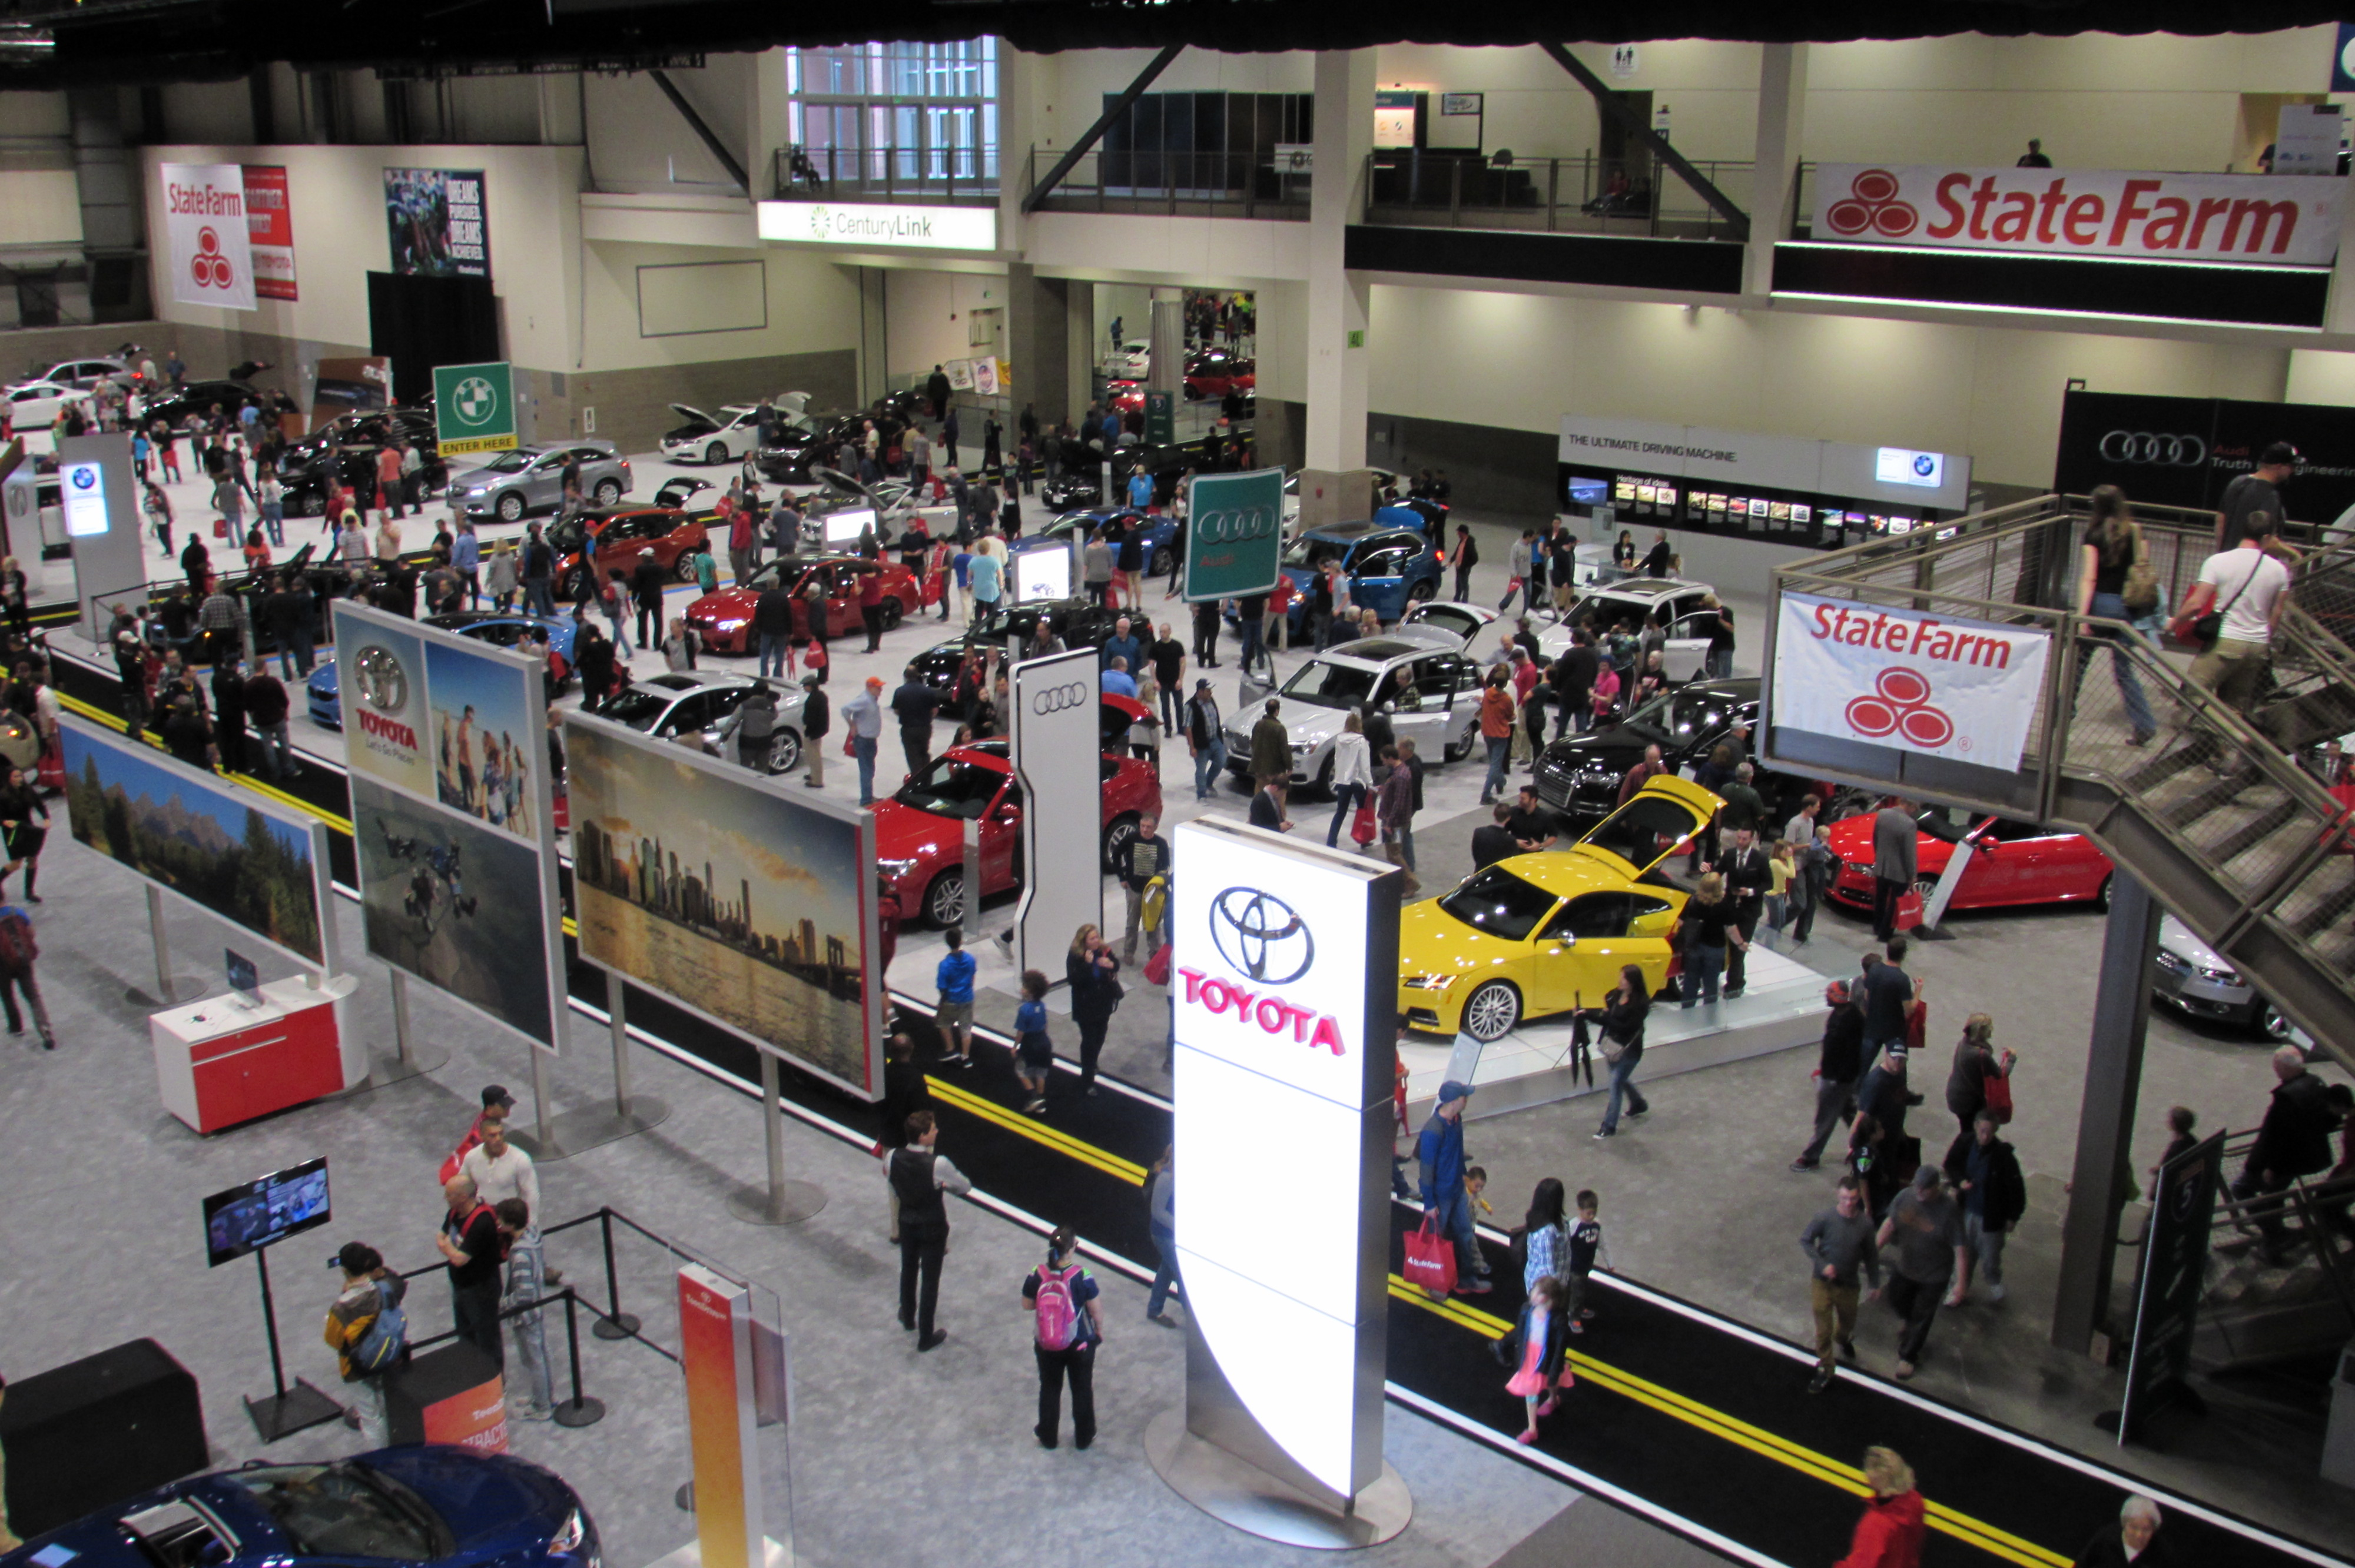 The Newest Automobiles Drive Into CenturyLink Field Event Center For - Seattle car show